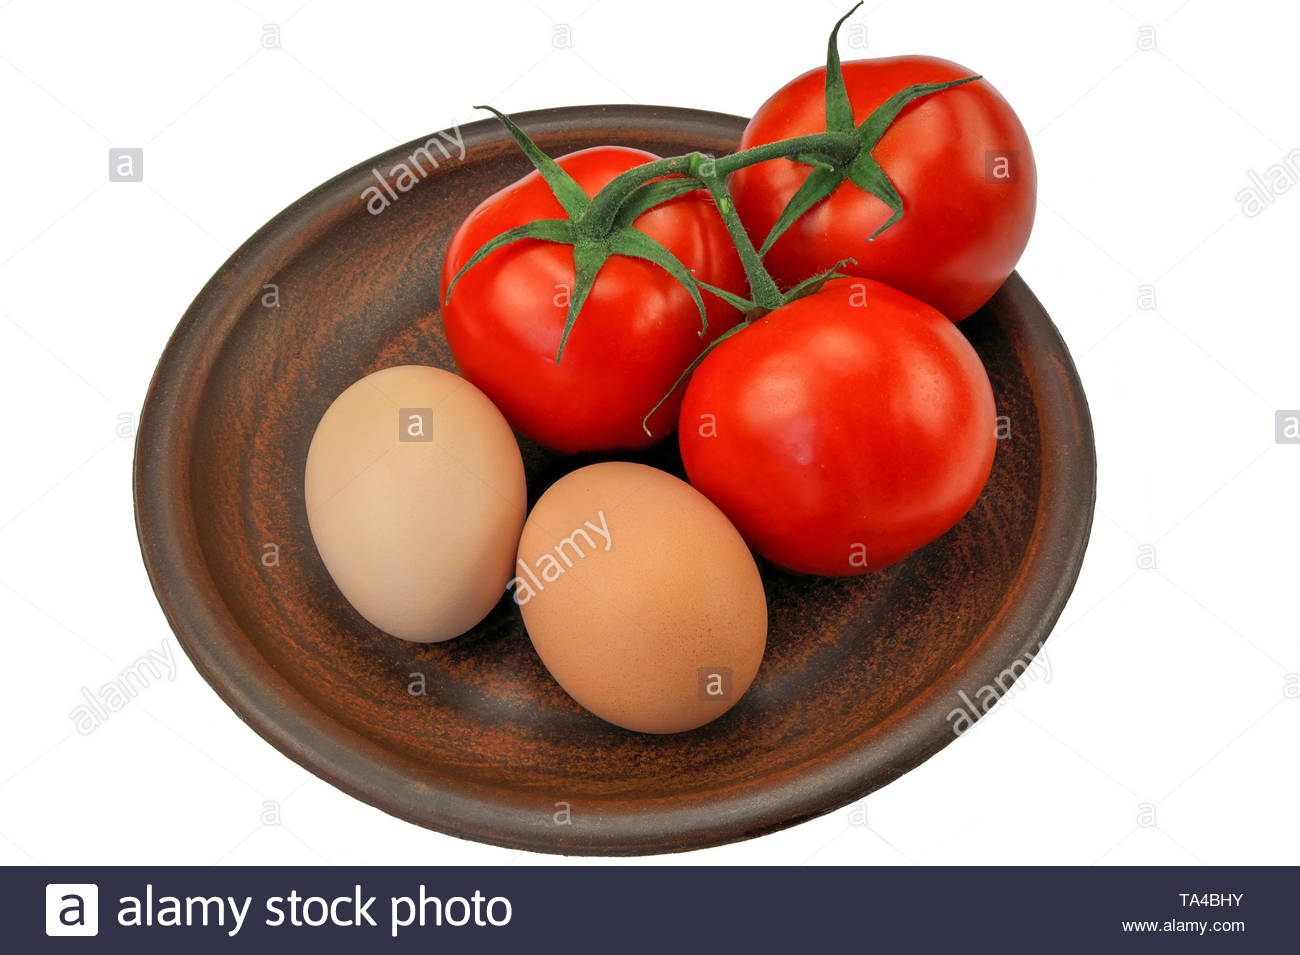 Three red ripe tomatoes on a twig and two eggs on a brown clay plate on a white background close-up - Stock Image